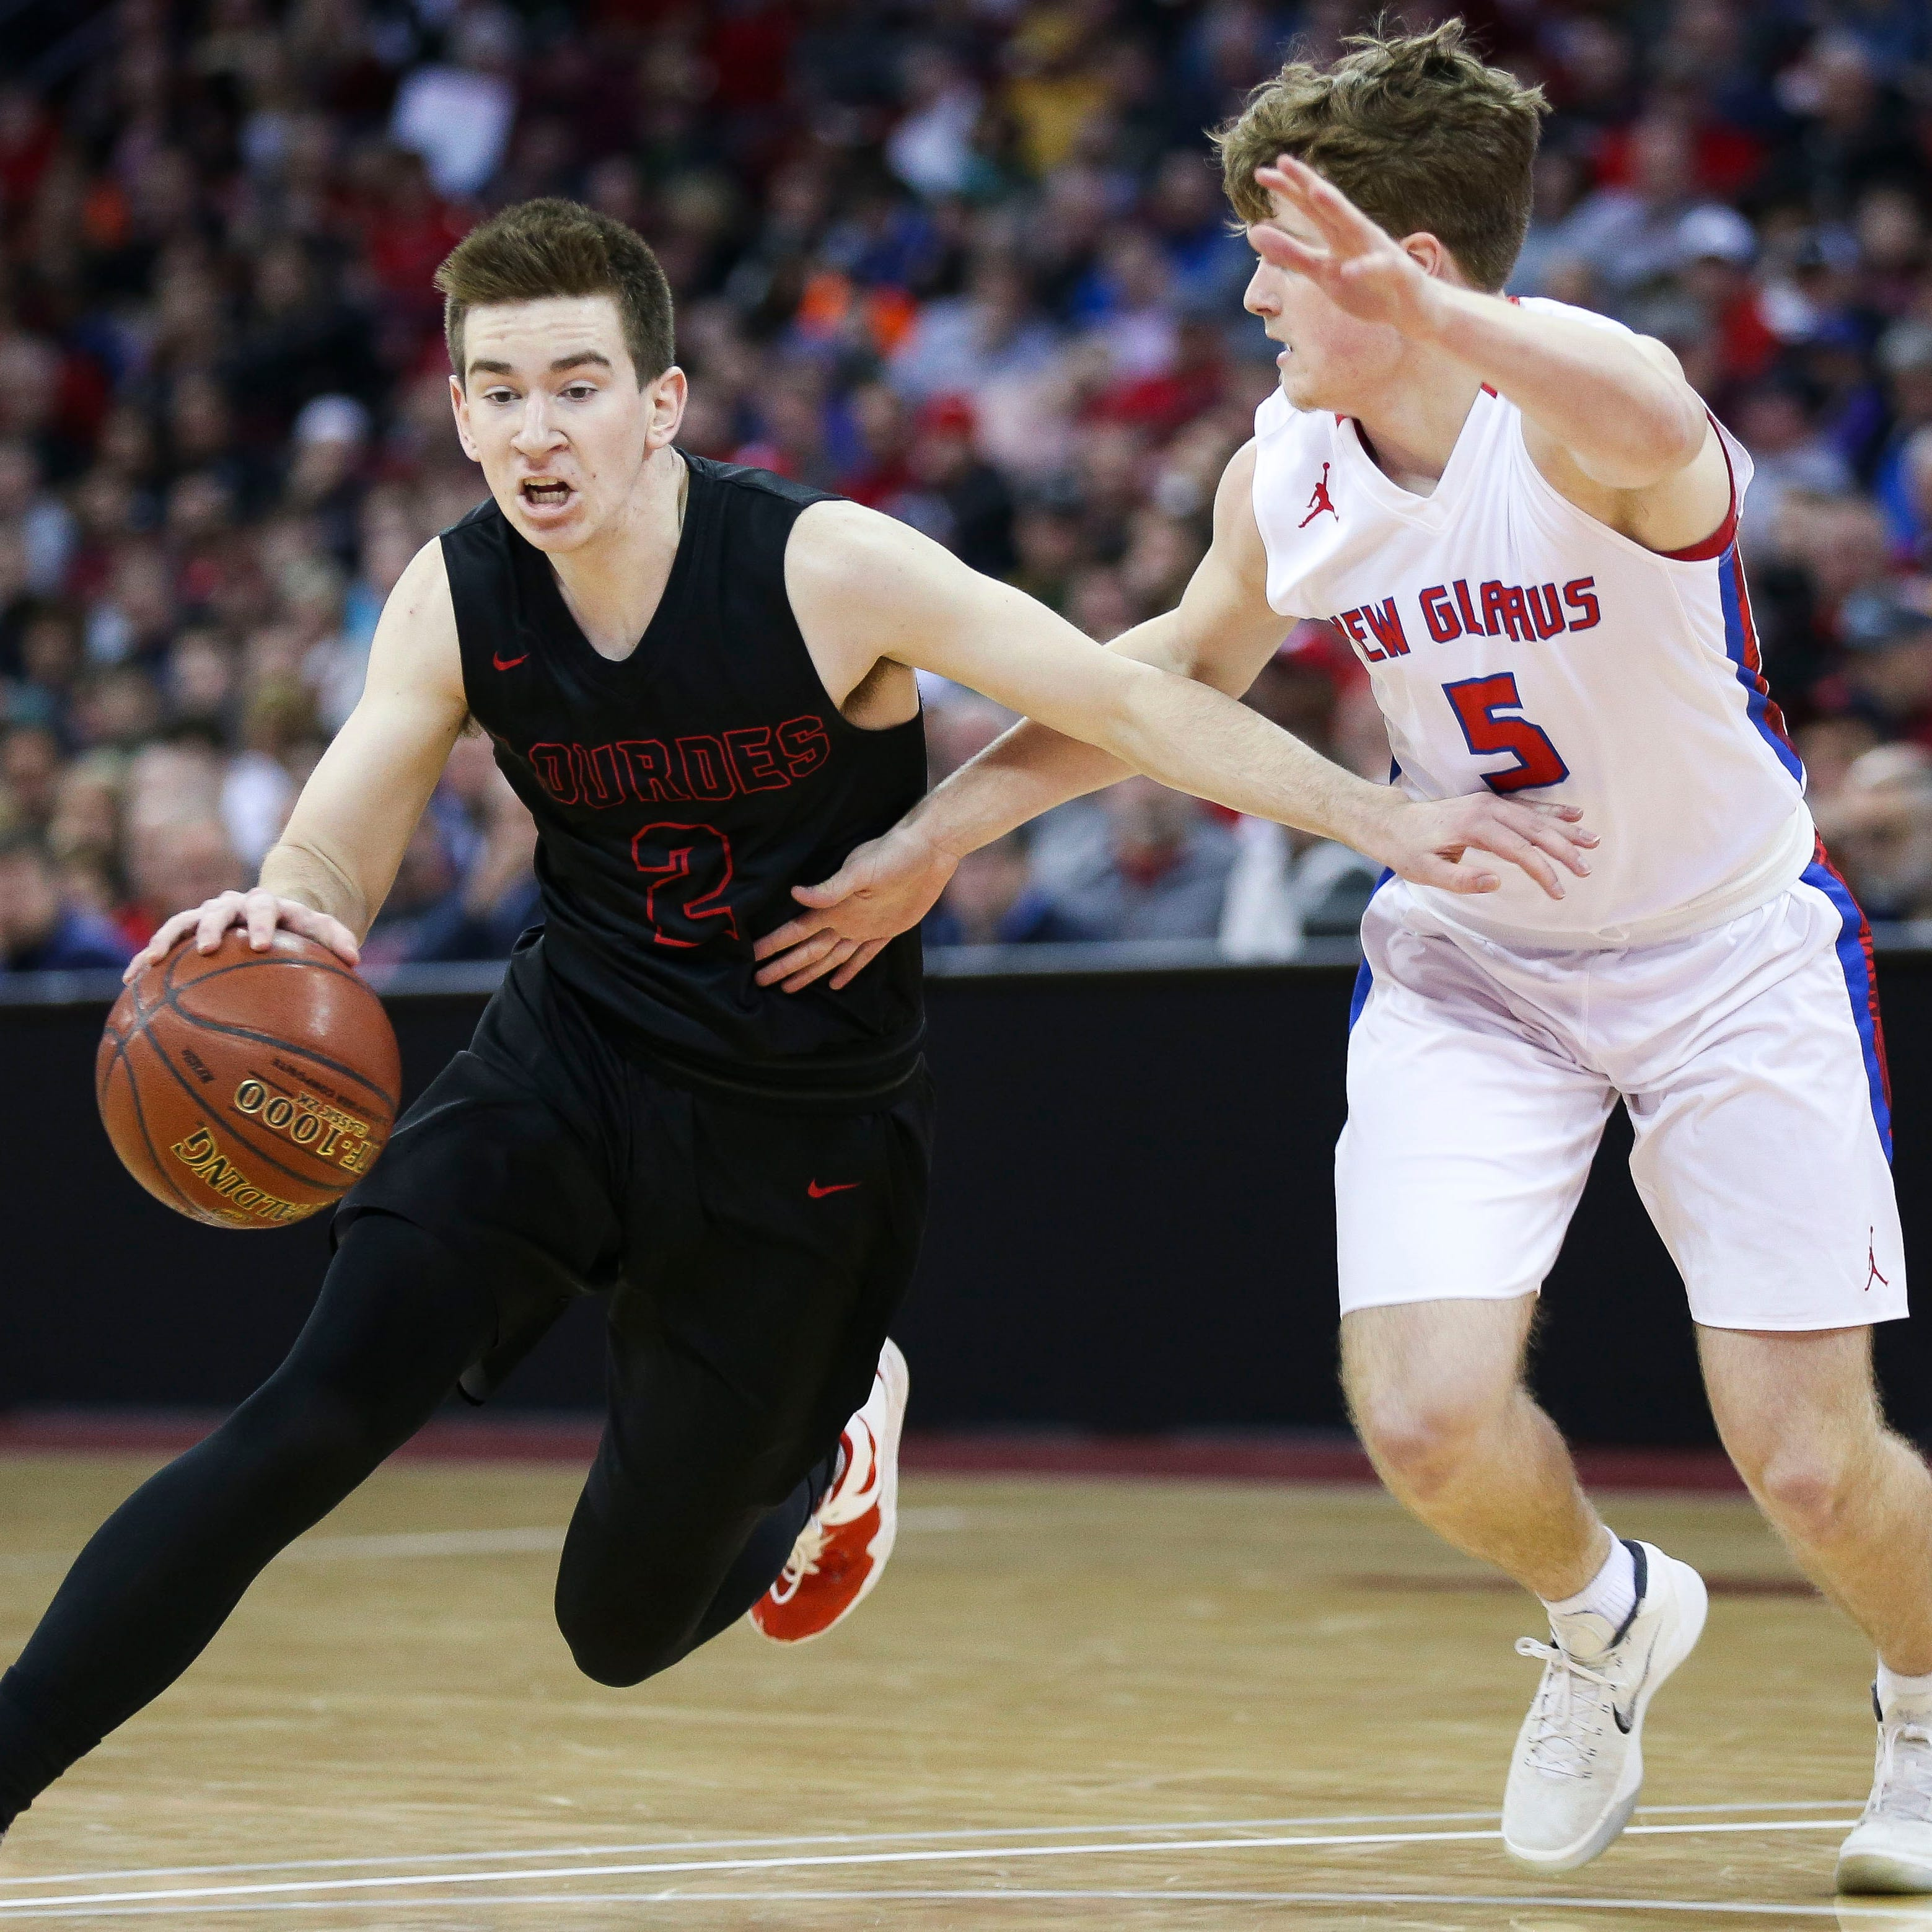 WIAA state basketball notes: Kreklow tough matchup for Lourdes